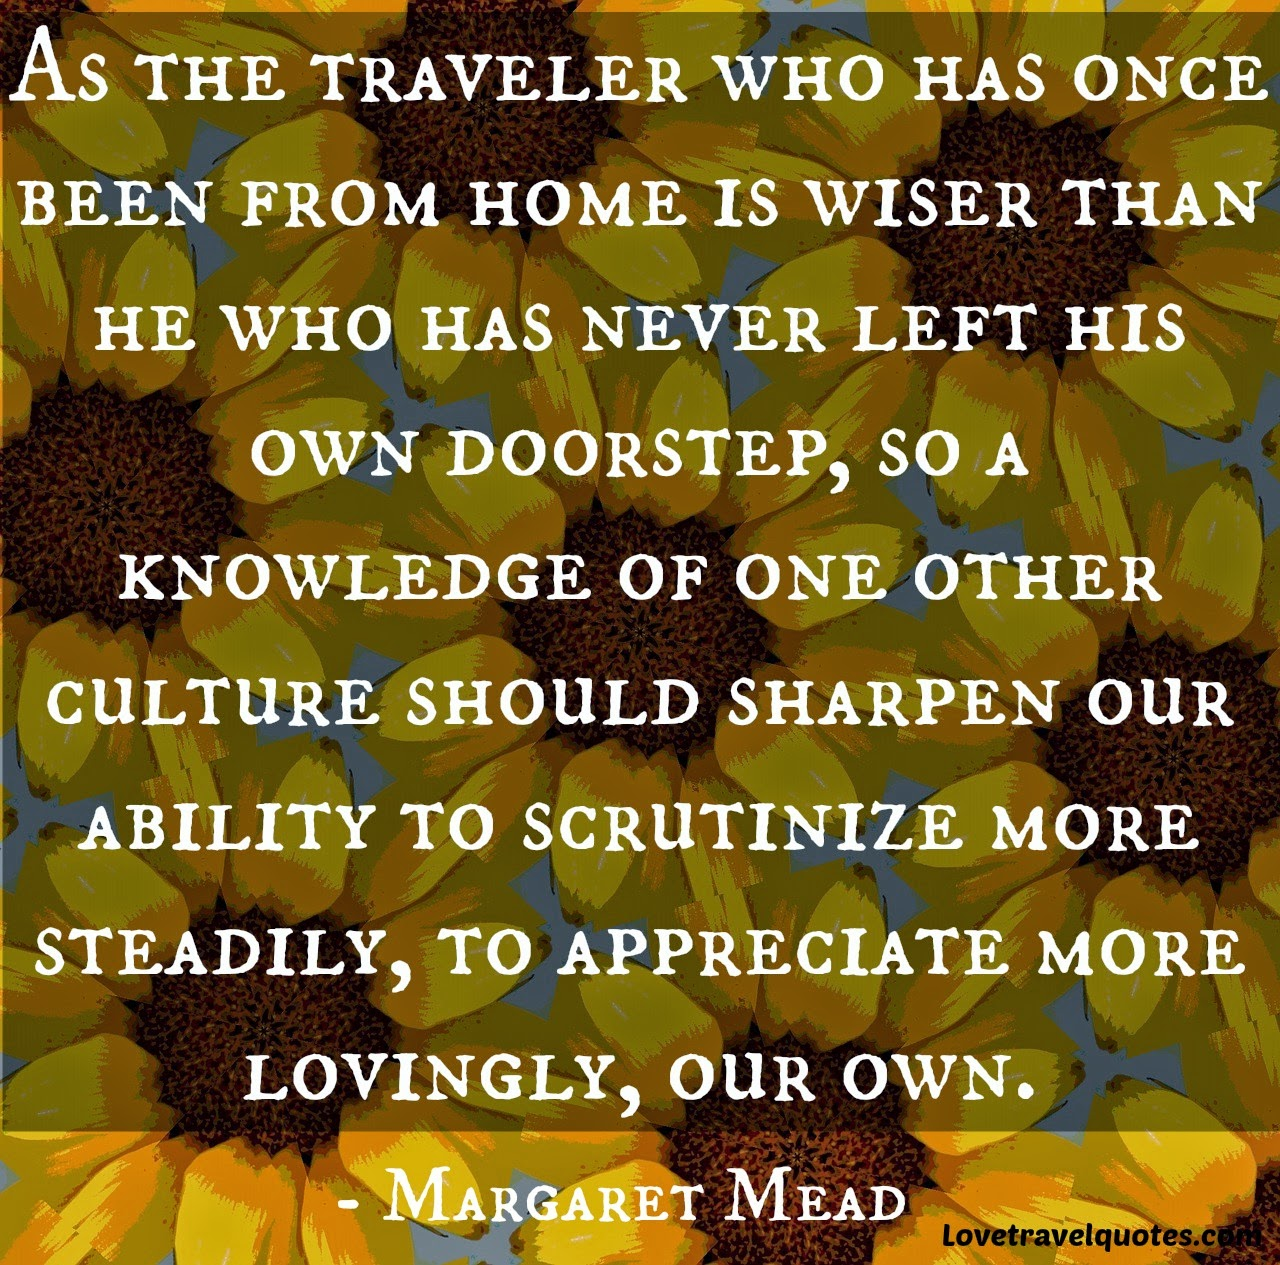 as the traveler who has once been from home is wiser than he who has never left his own doorstep